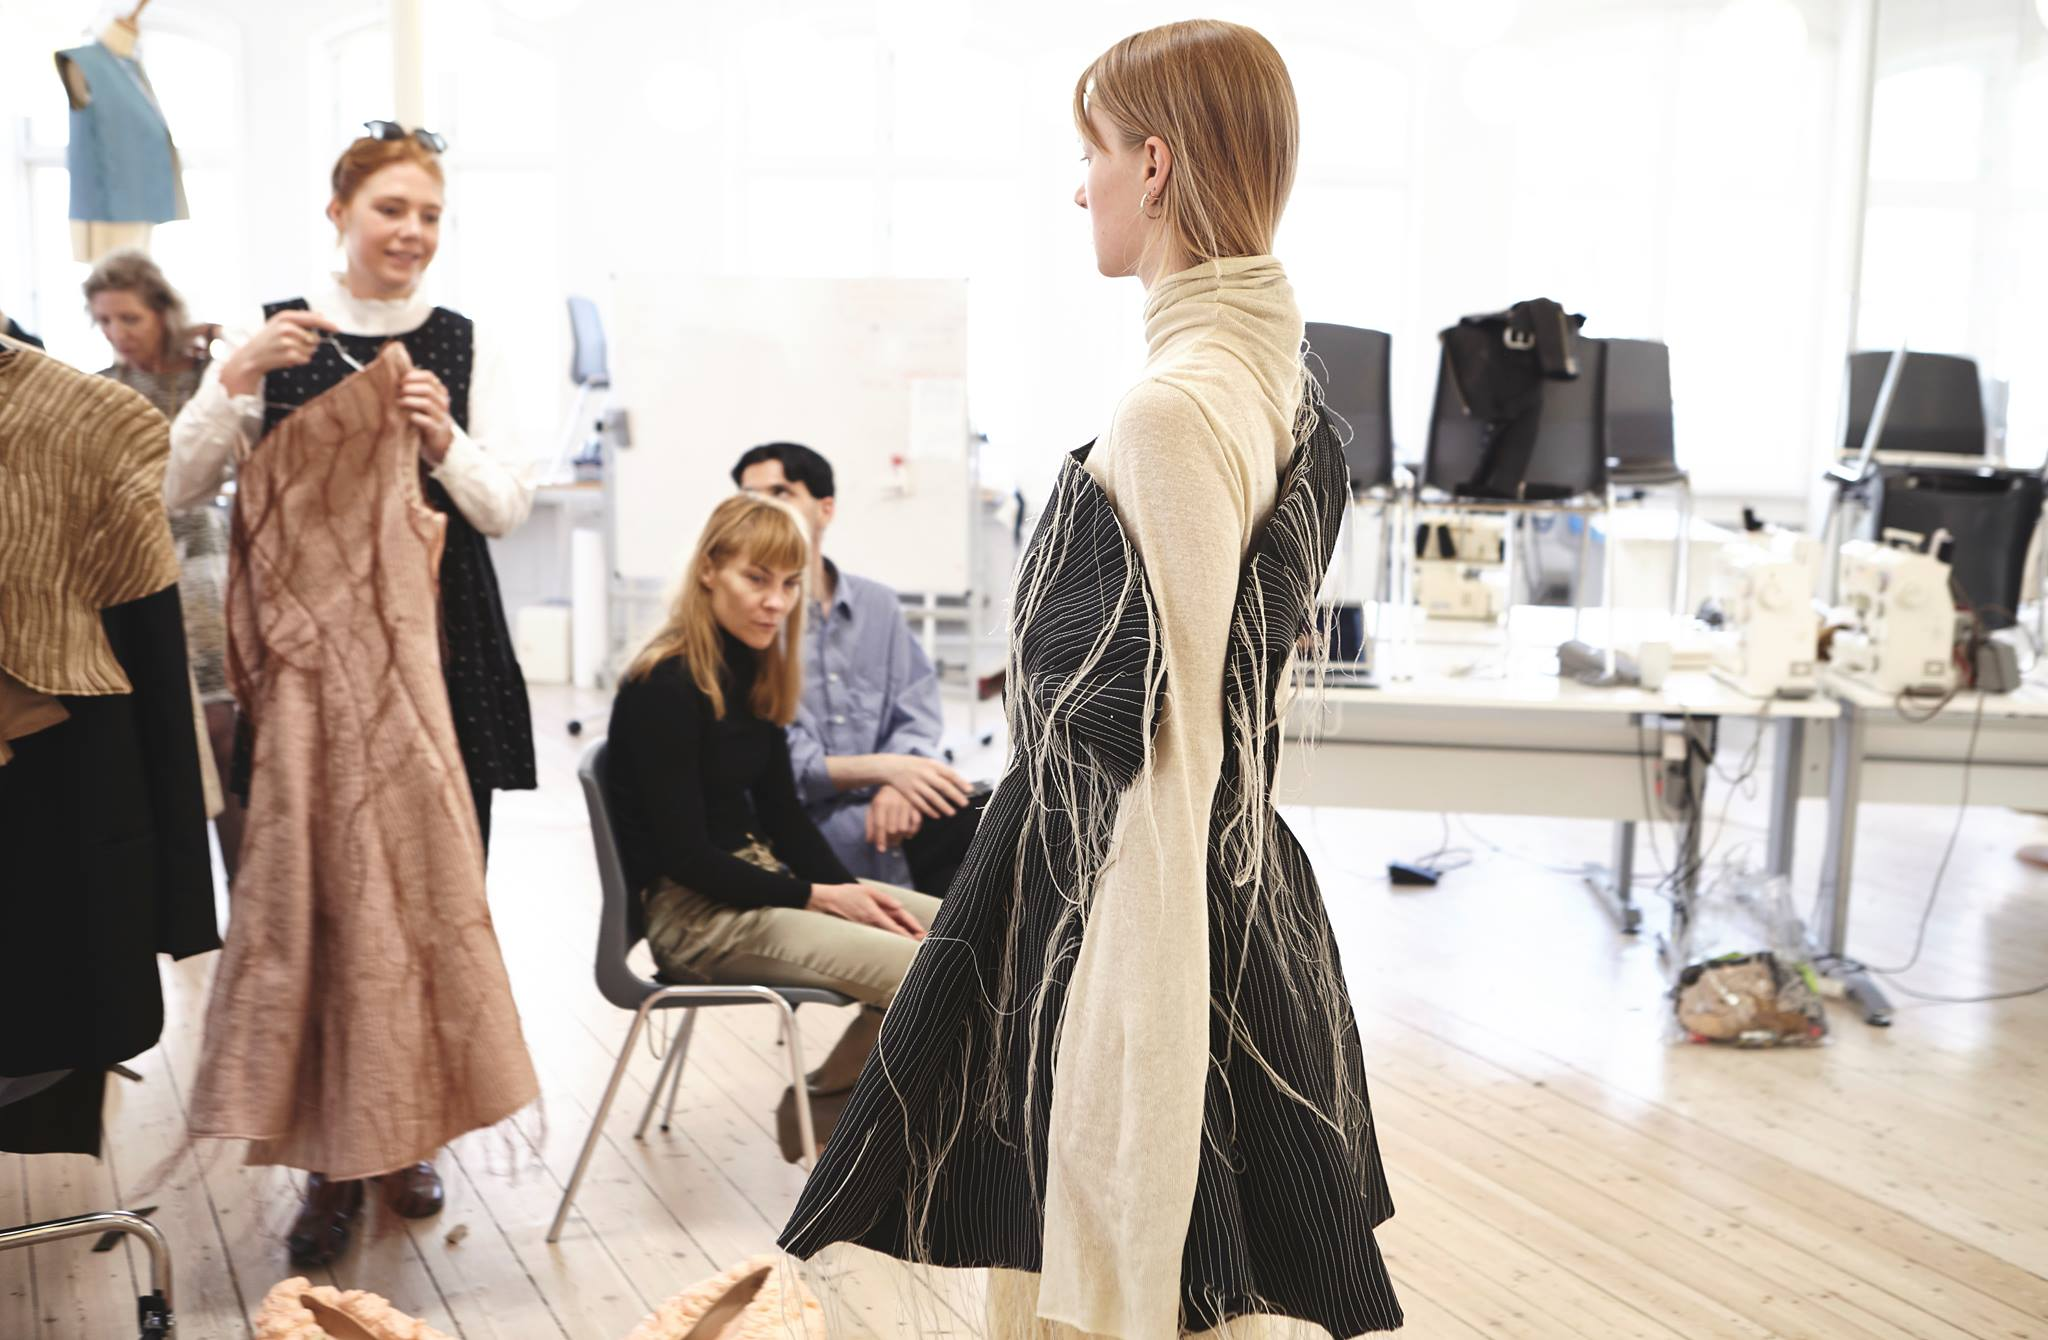 The Leading Fashion And Design School In Denmark Scandinavian Academy Of Fashion Design